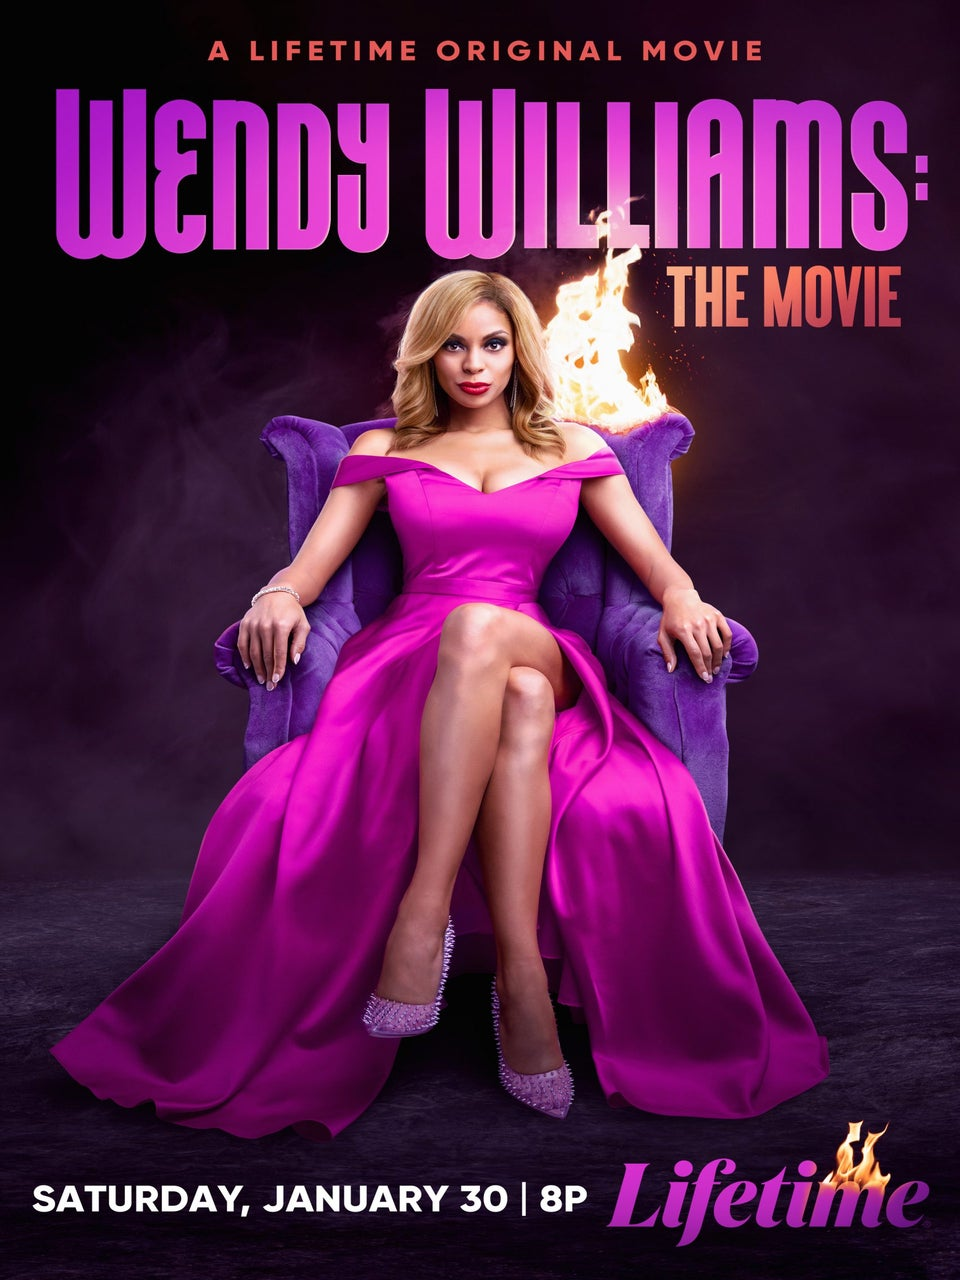 8 Things We Learned About Wendy Williams From Her Lifetime Biopic & Documentary